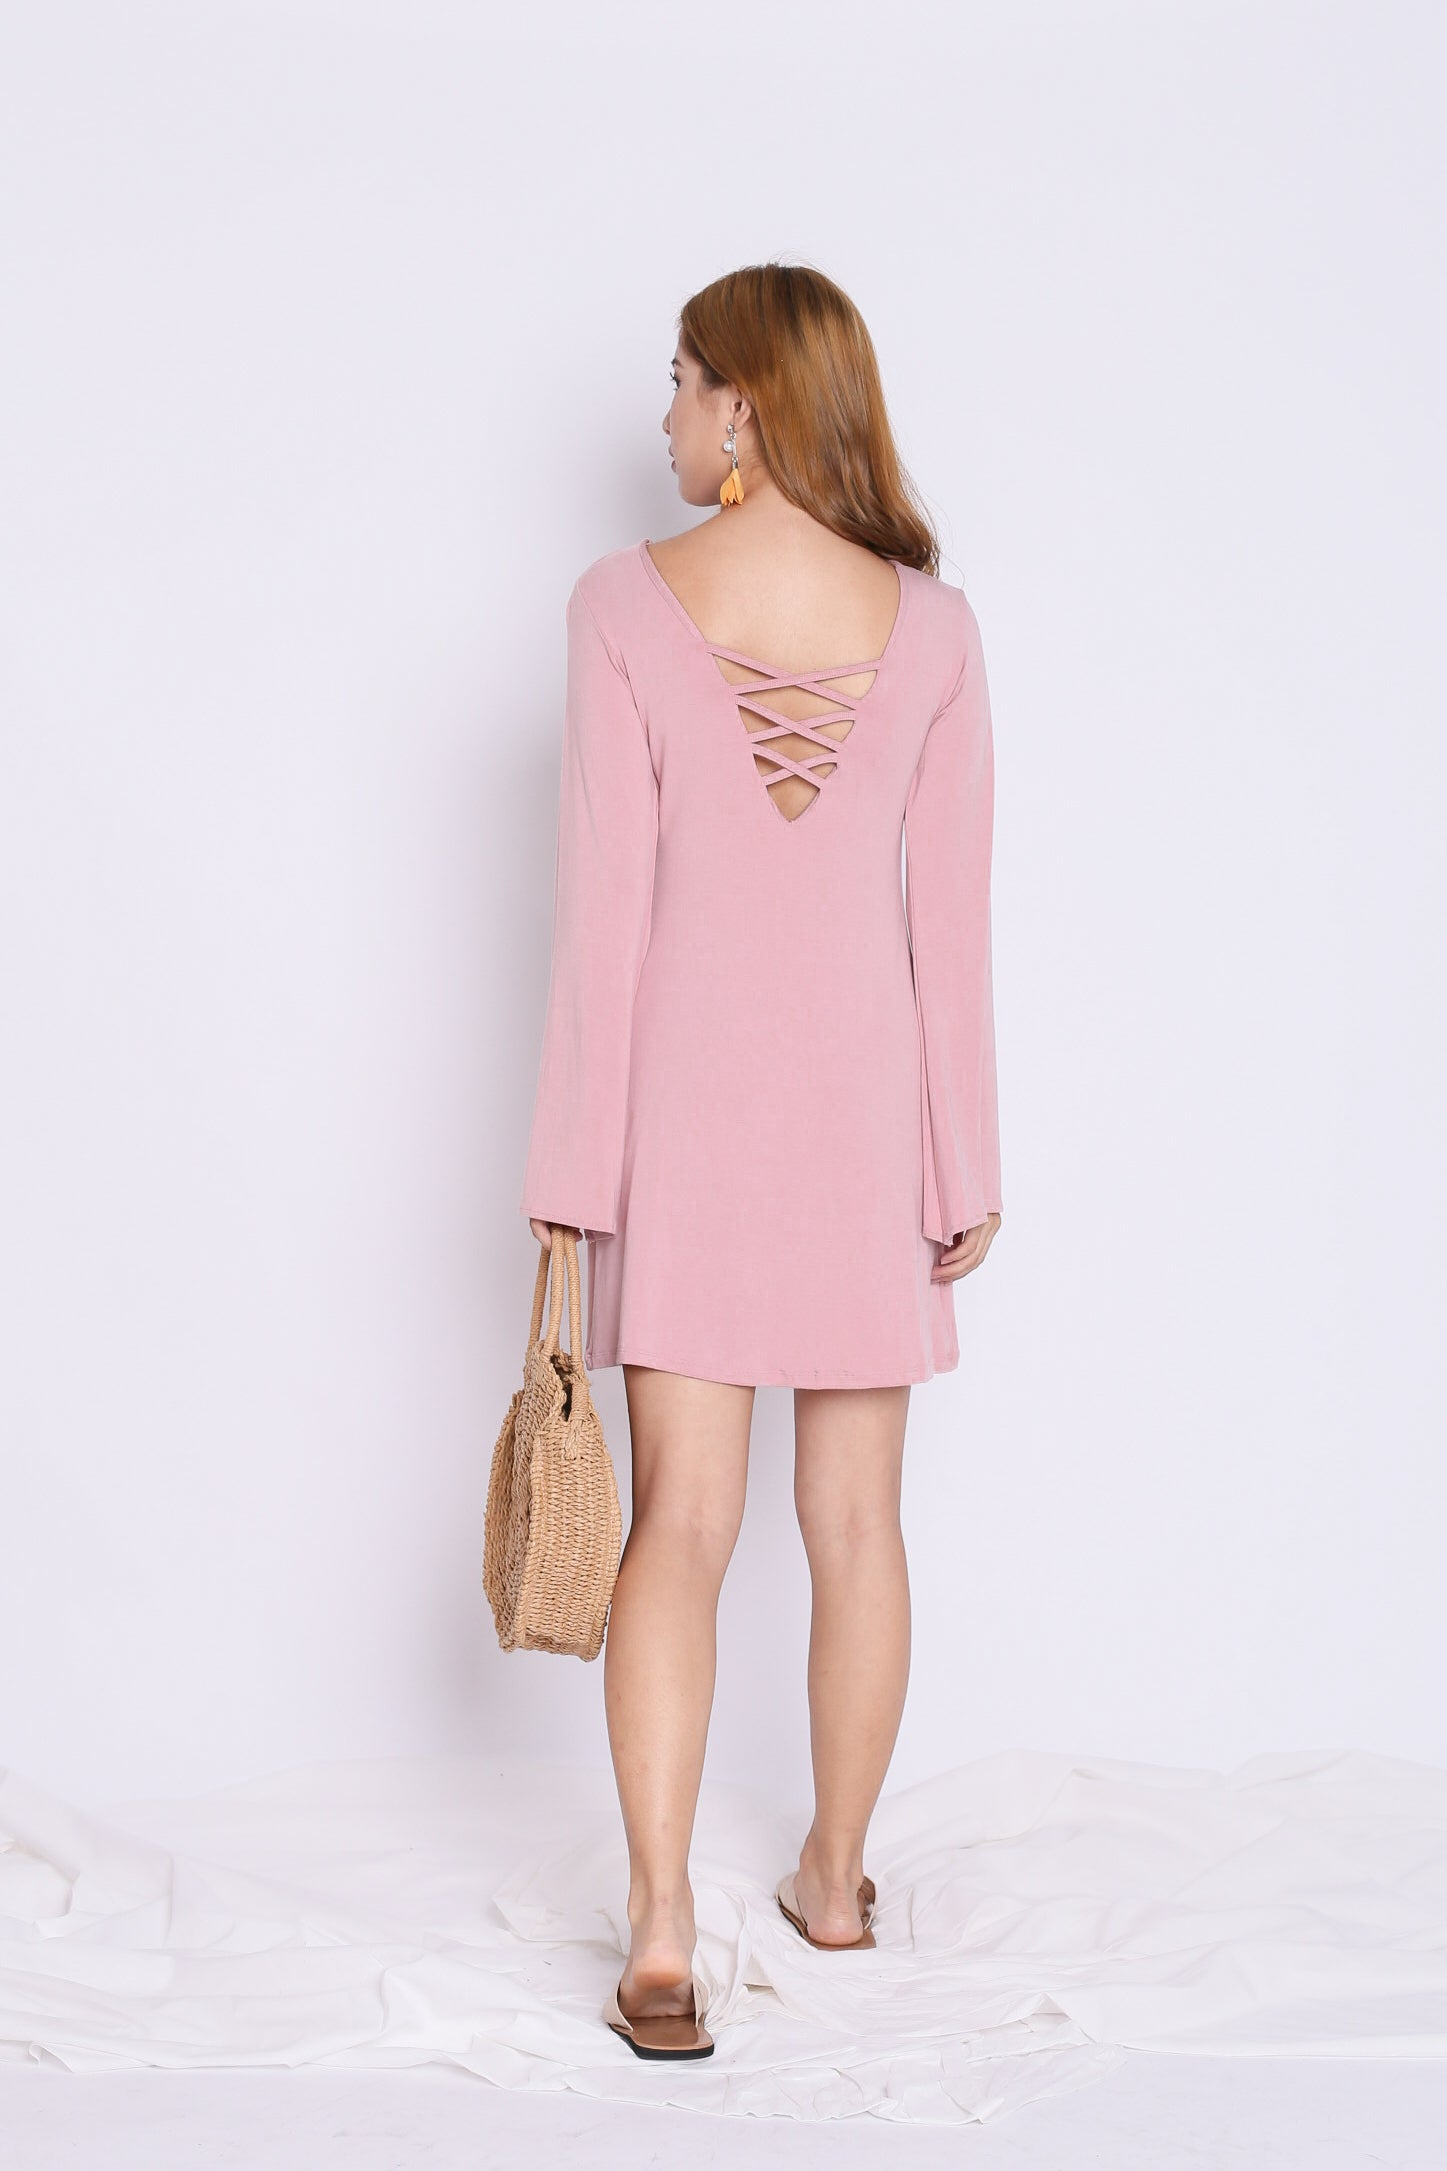 BREE LACED BELL SLEEVES DRESS IN PINK